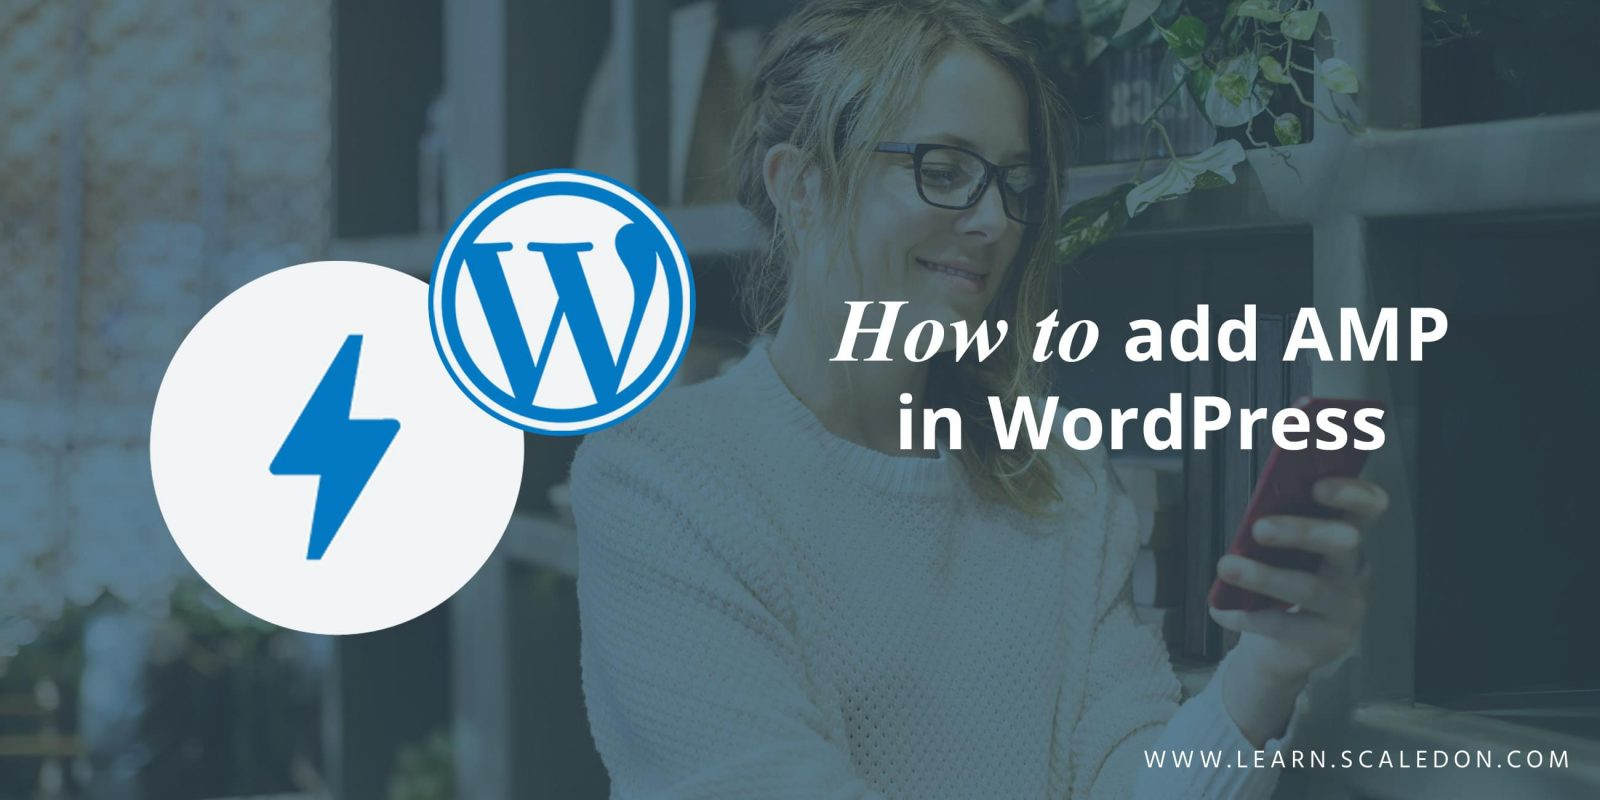 How to add AMP in WordPress